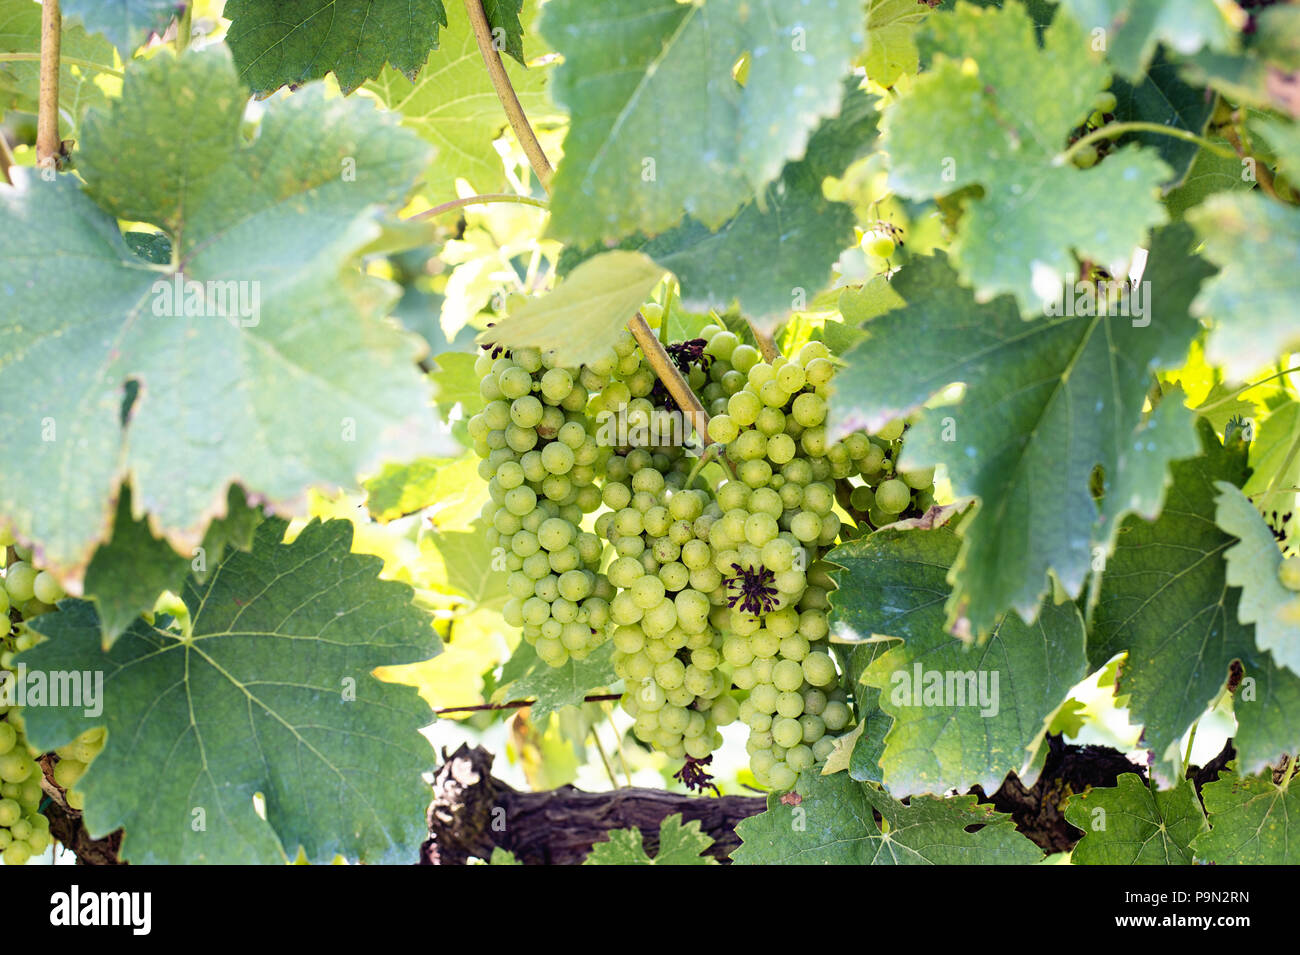 Green grapes harvest in vineyard in Tirana countryside - Stock Image